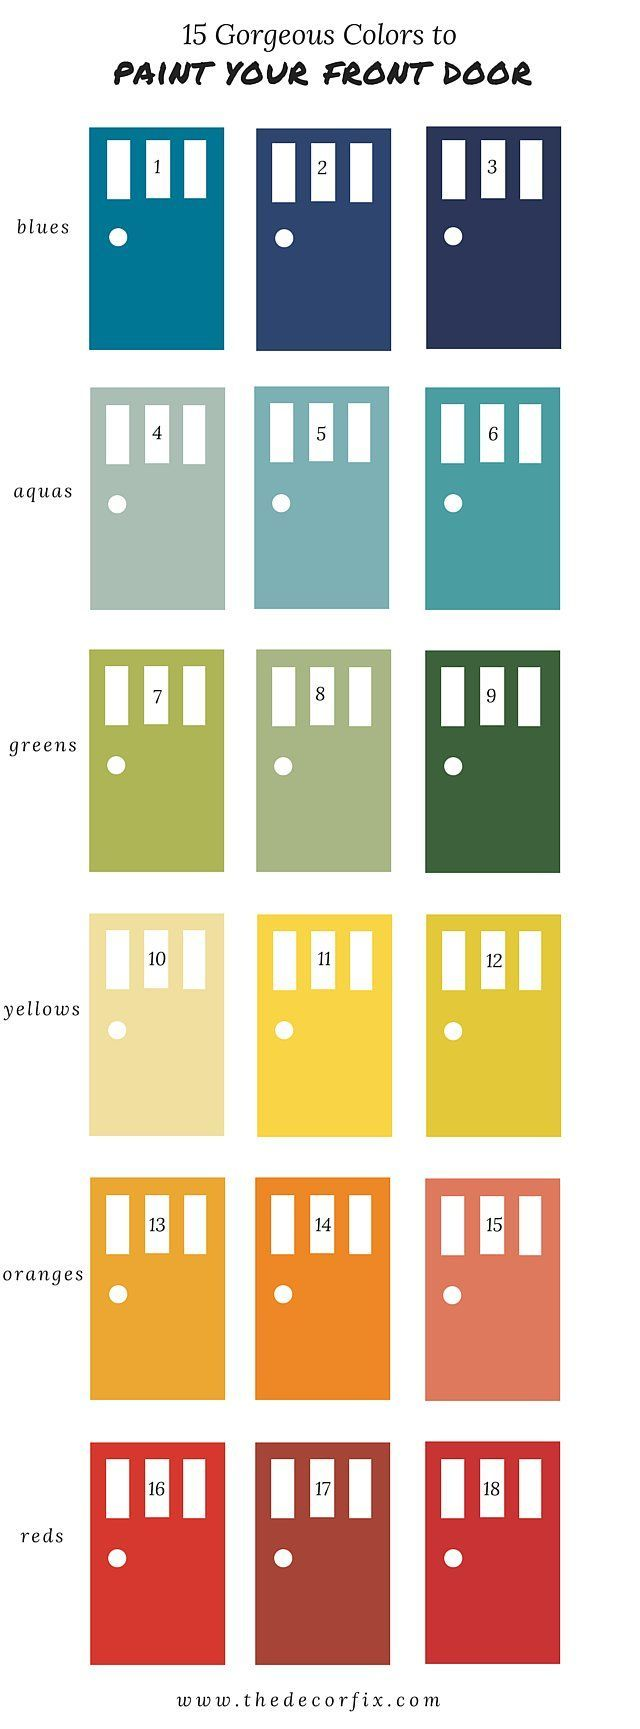 Benjamin moore front door paint colors - How To Pick The Best Paint Color For Your Front Door